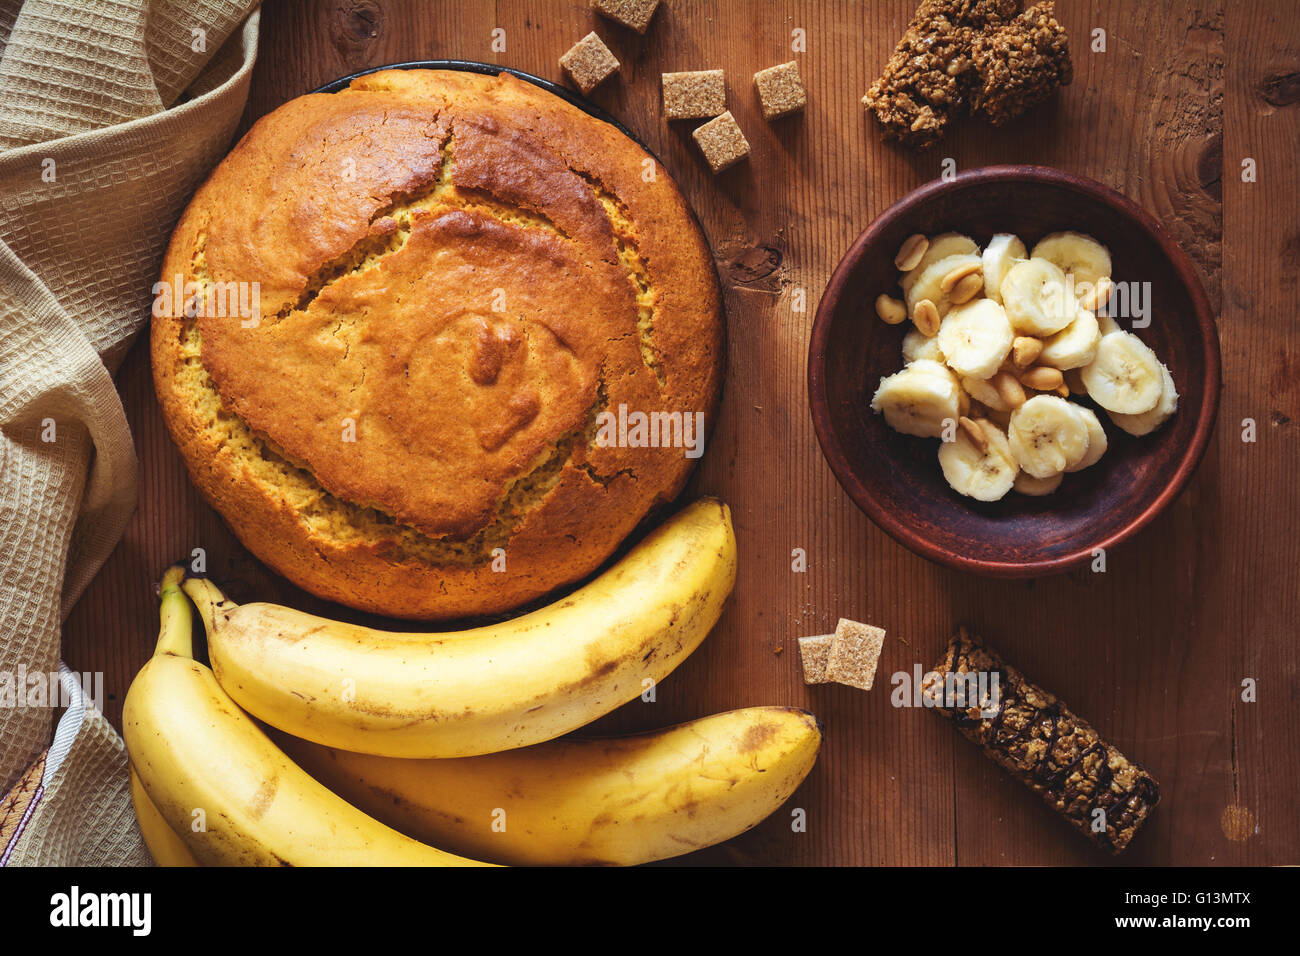 Round loaf of freshly baked banana bread with peanuts, dark chocolate and brown sugar on wooden backdrop. Table Stock Photo